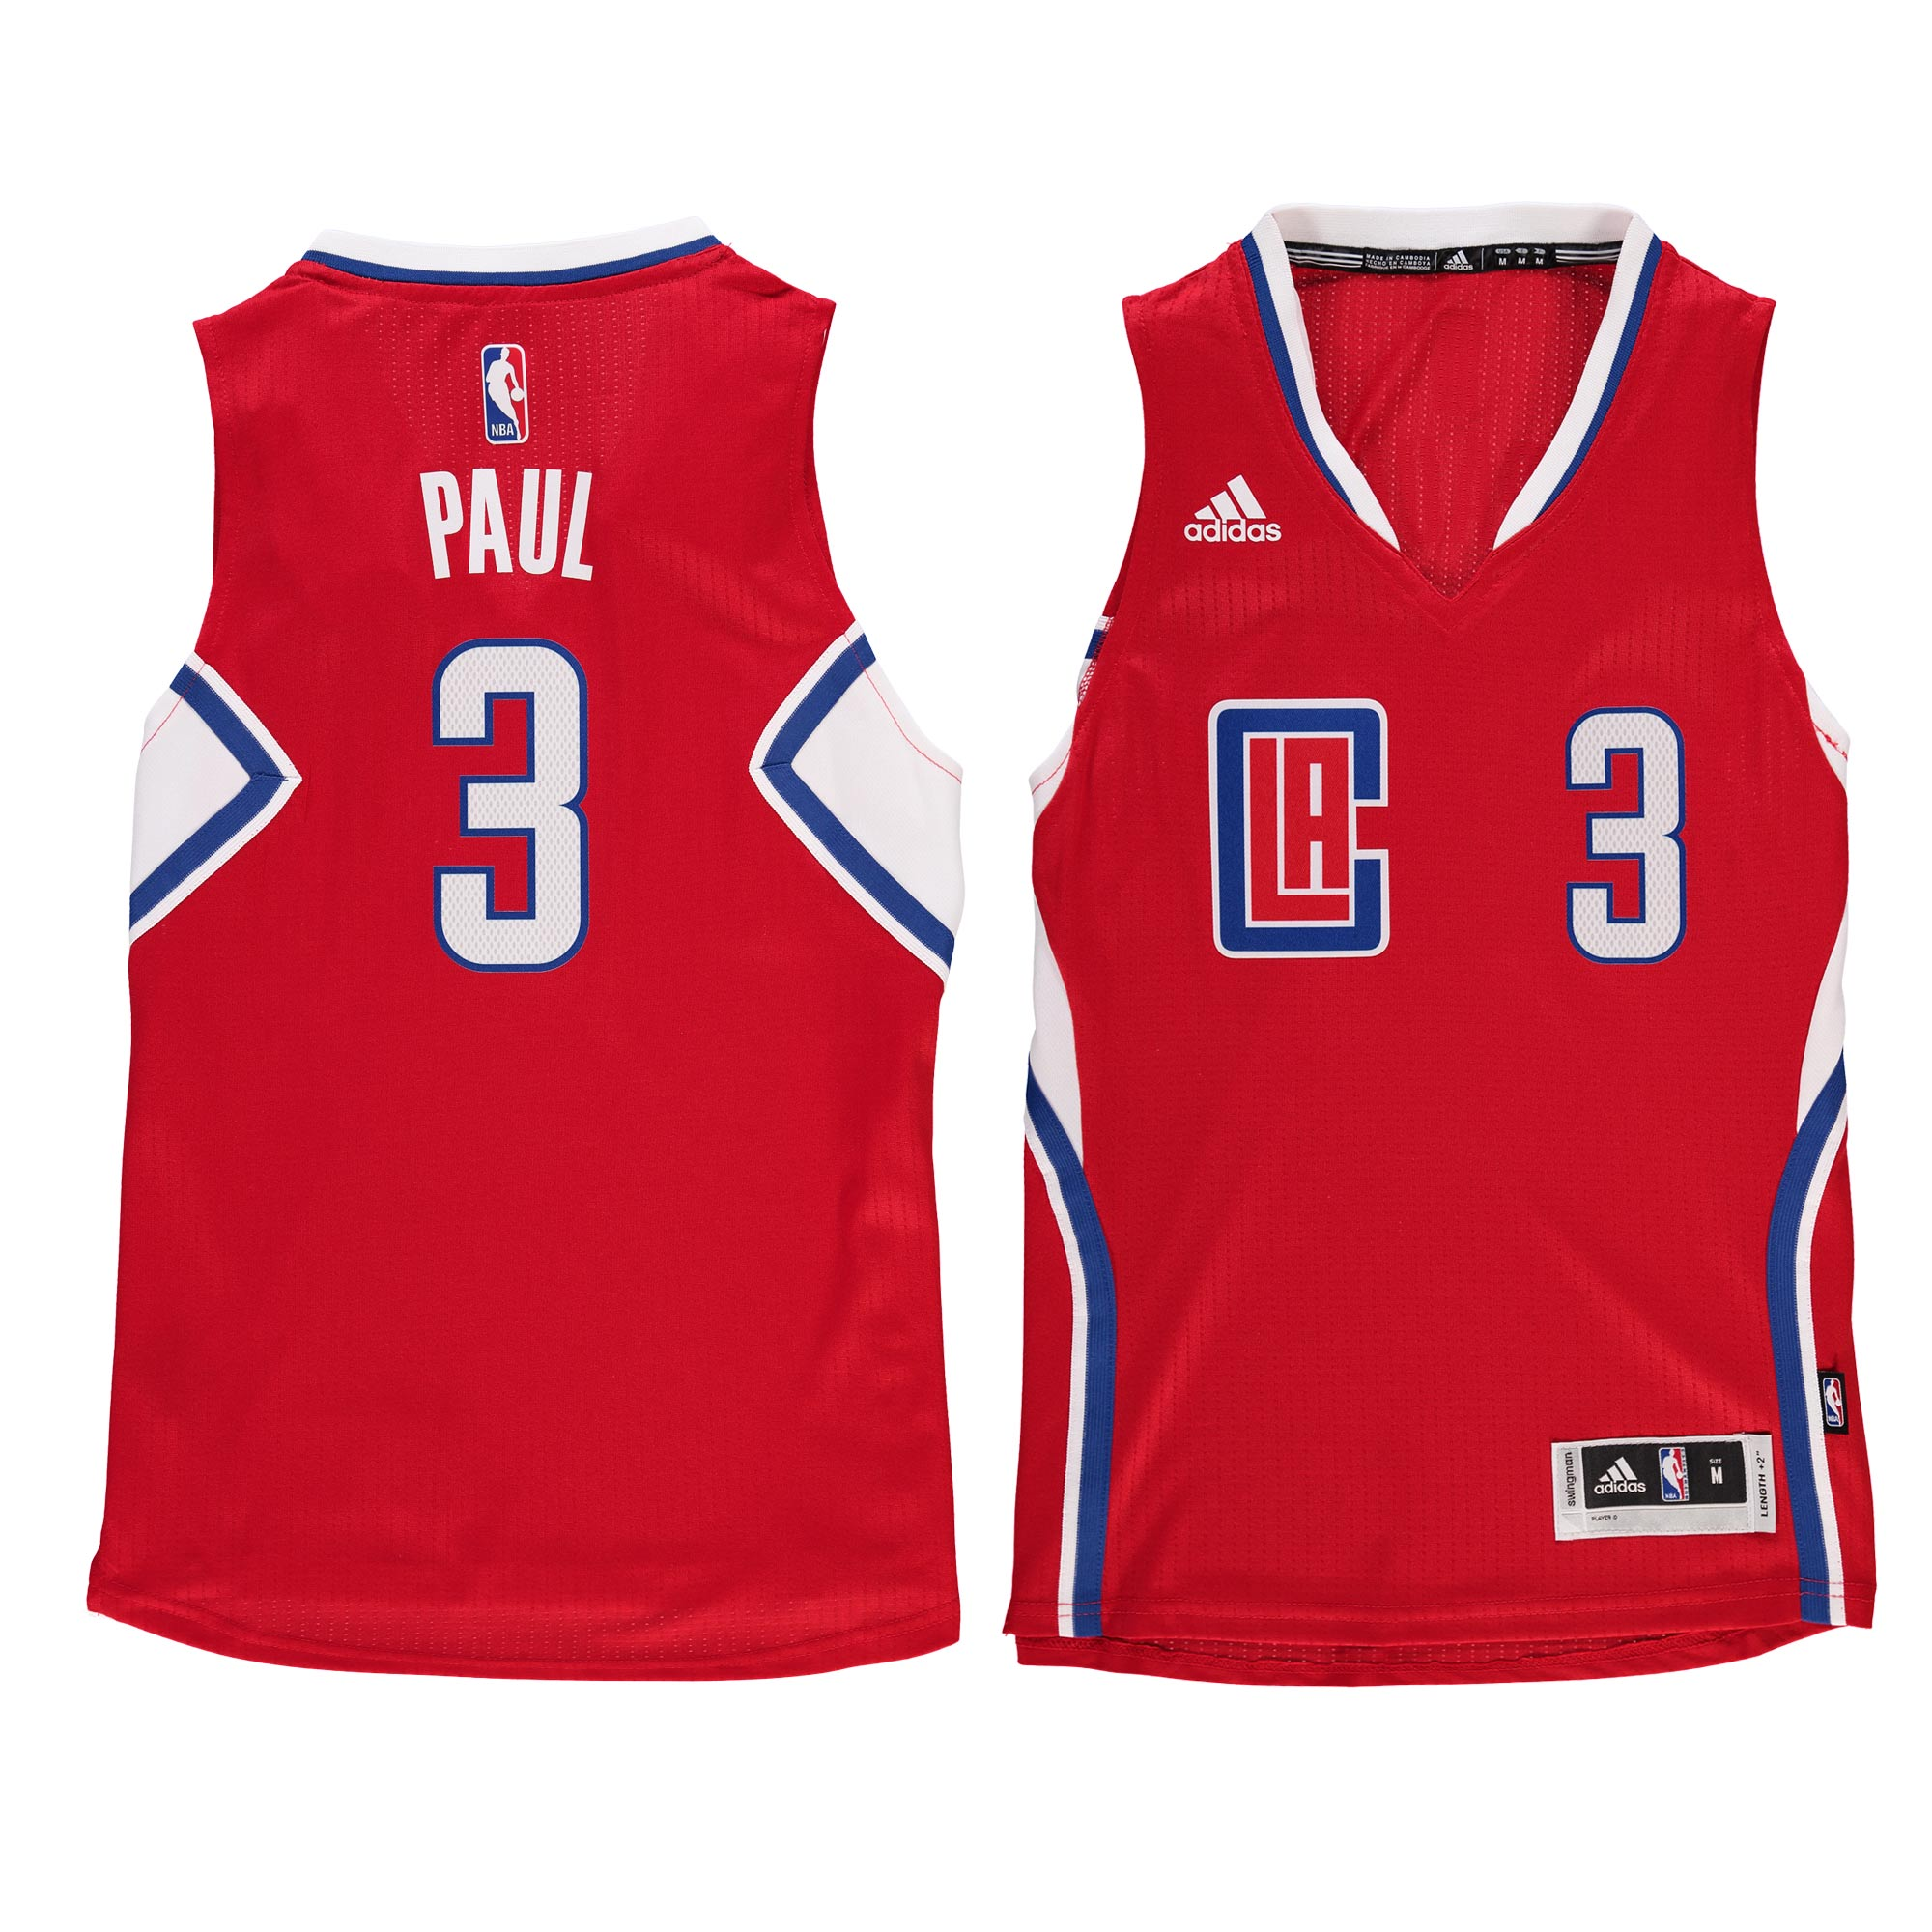 Chris Paul LA Clippers Youth Swingman Basketball Jersey - Red